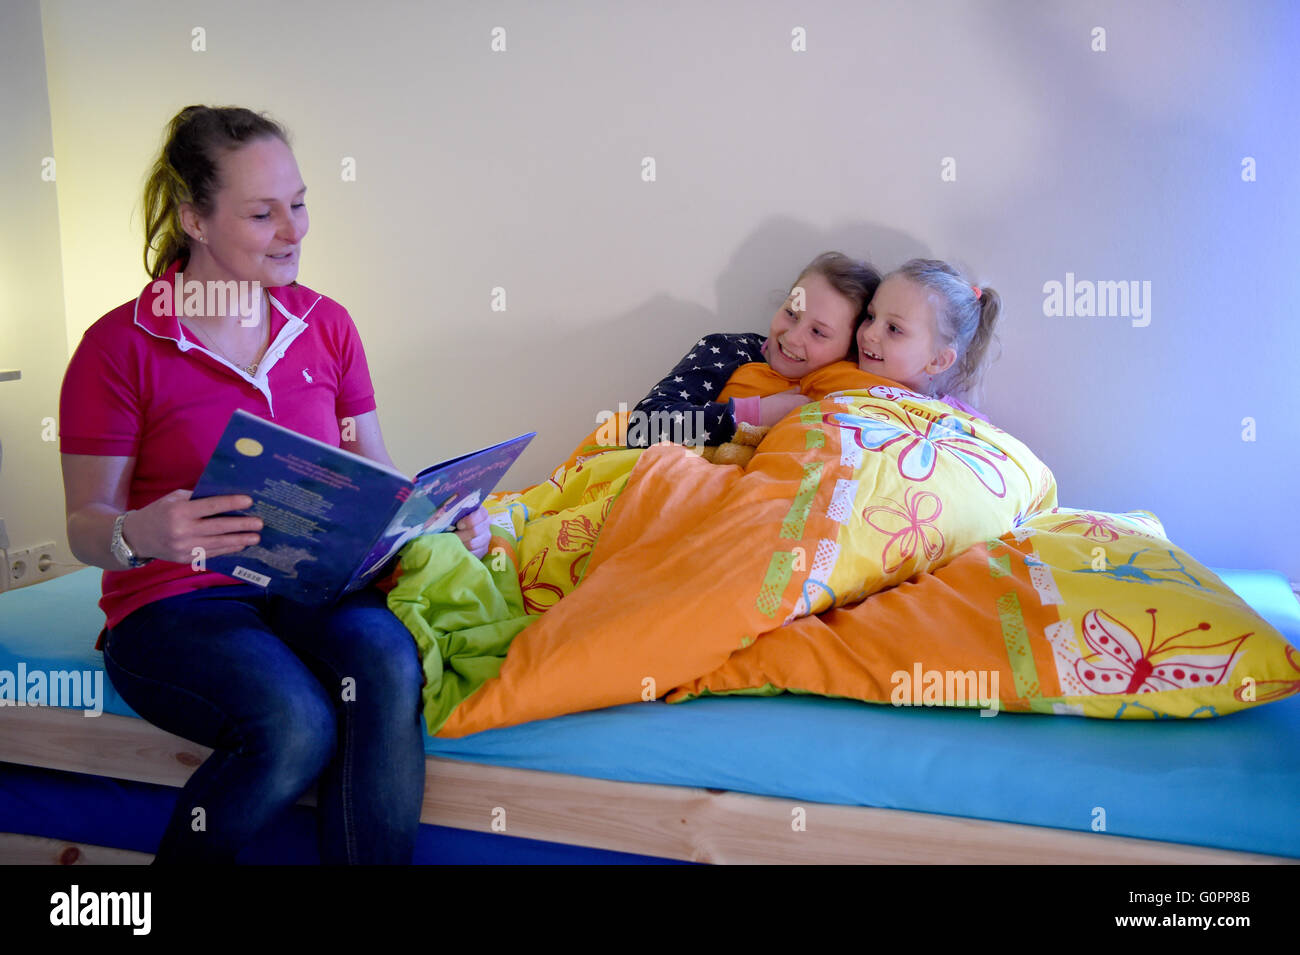 Sisters Skady-Lee (10) and Lucy-Mae (6) sit on a bed next to their mother Wiebke Ruedig at the night nursery at Stock Photo